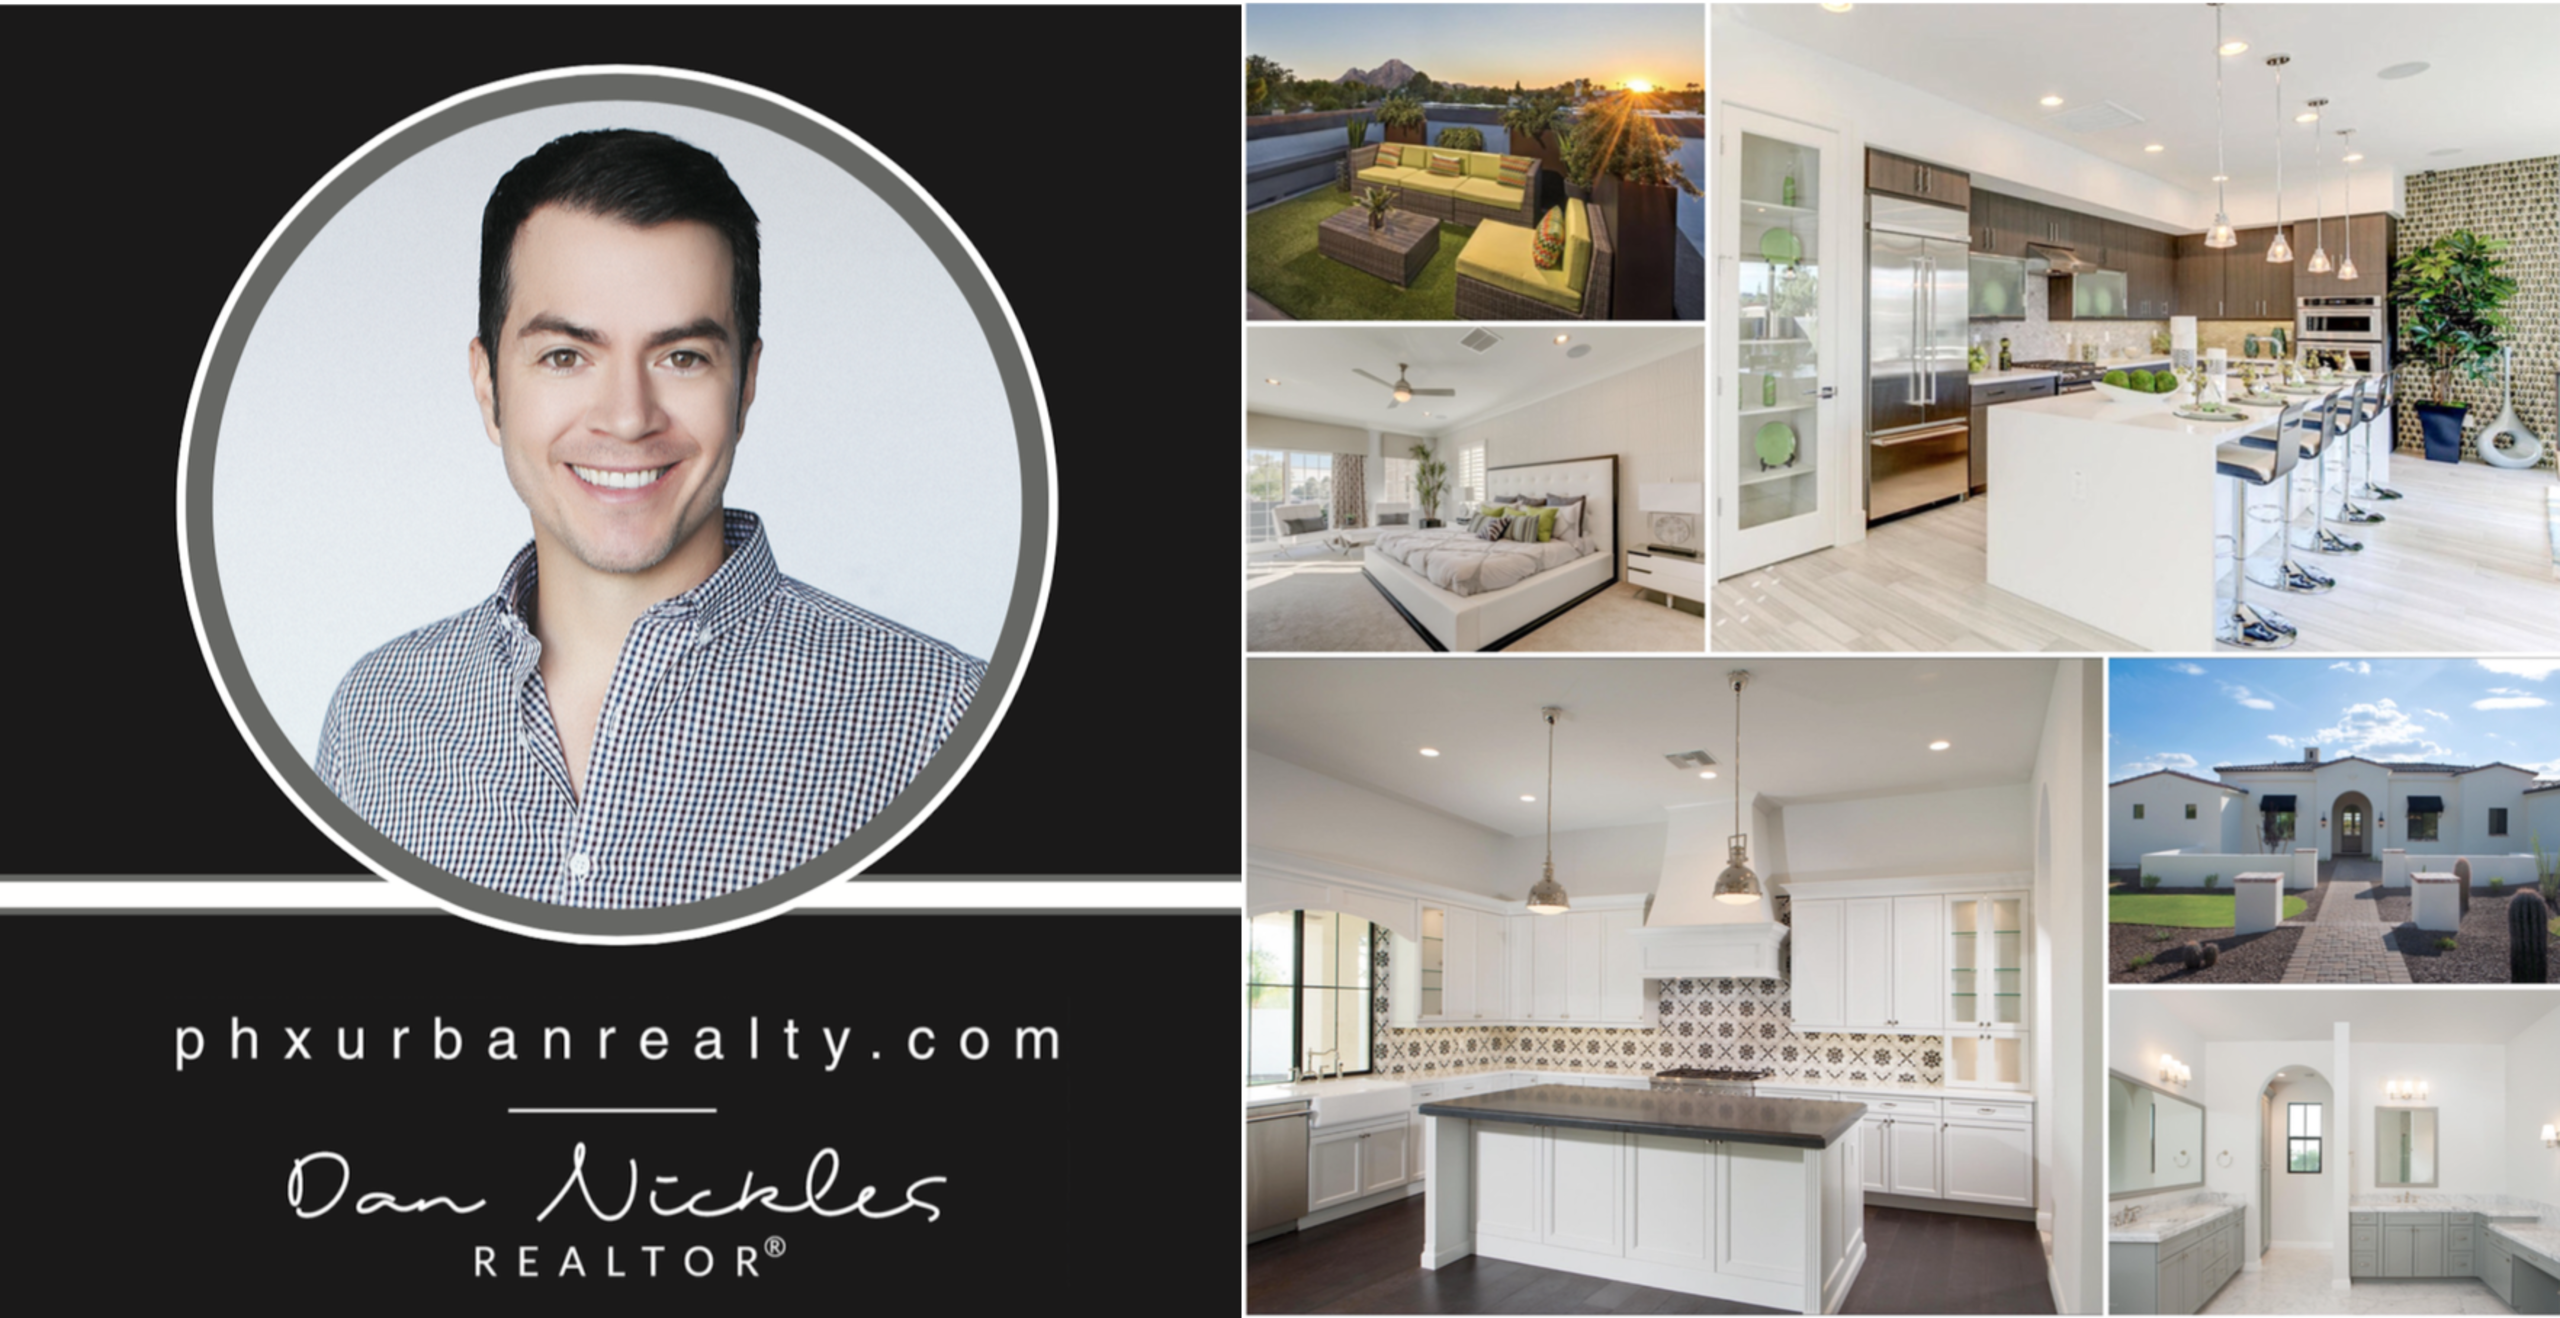 A Valley Native with 18+ years experience & over $130 Million Sold, Dan is your Local Expert!